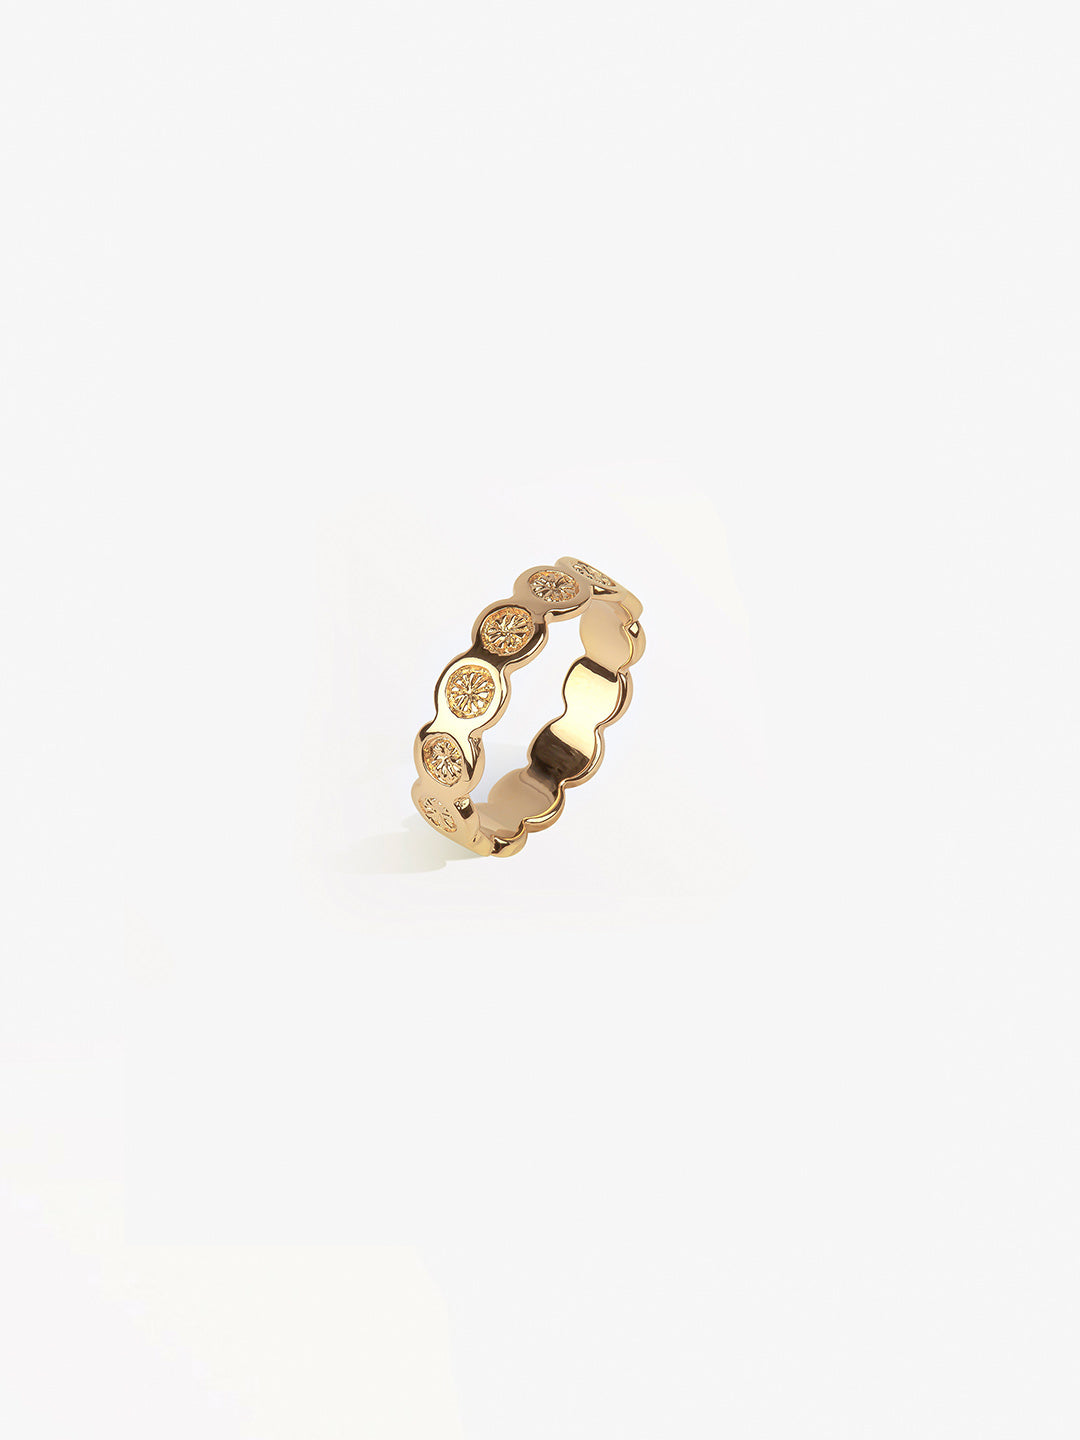 Ana Luisa Rings Stacking Rings Stackable Sun Ring Sol Gold